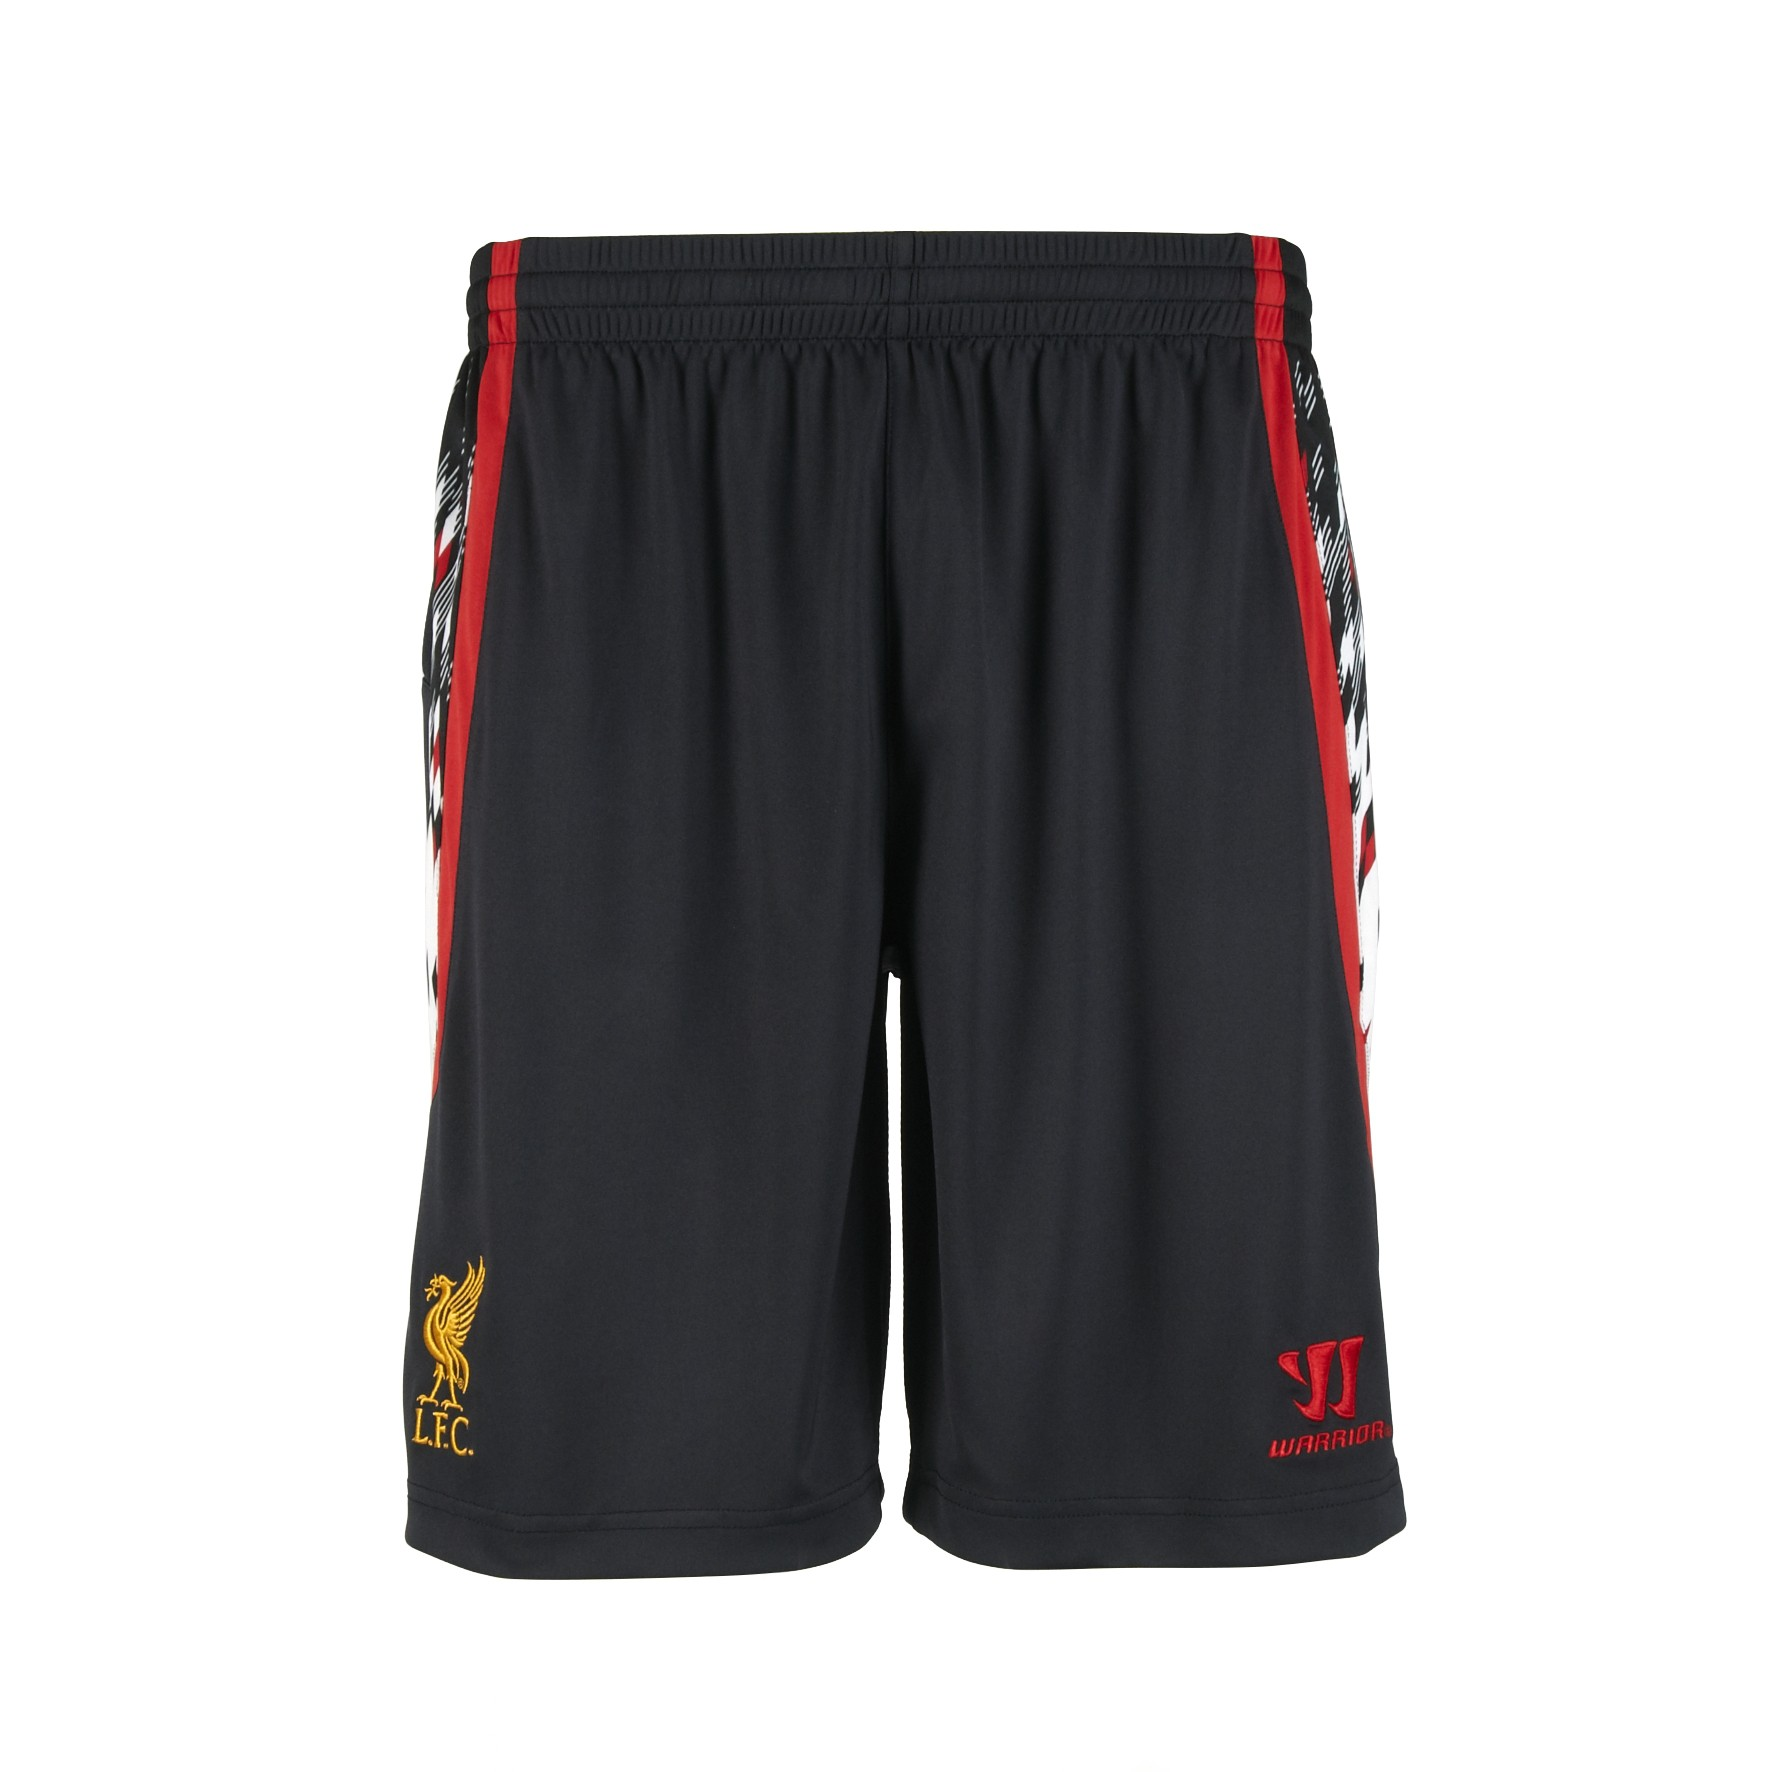 Liverpool FC short junior 2013/14